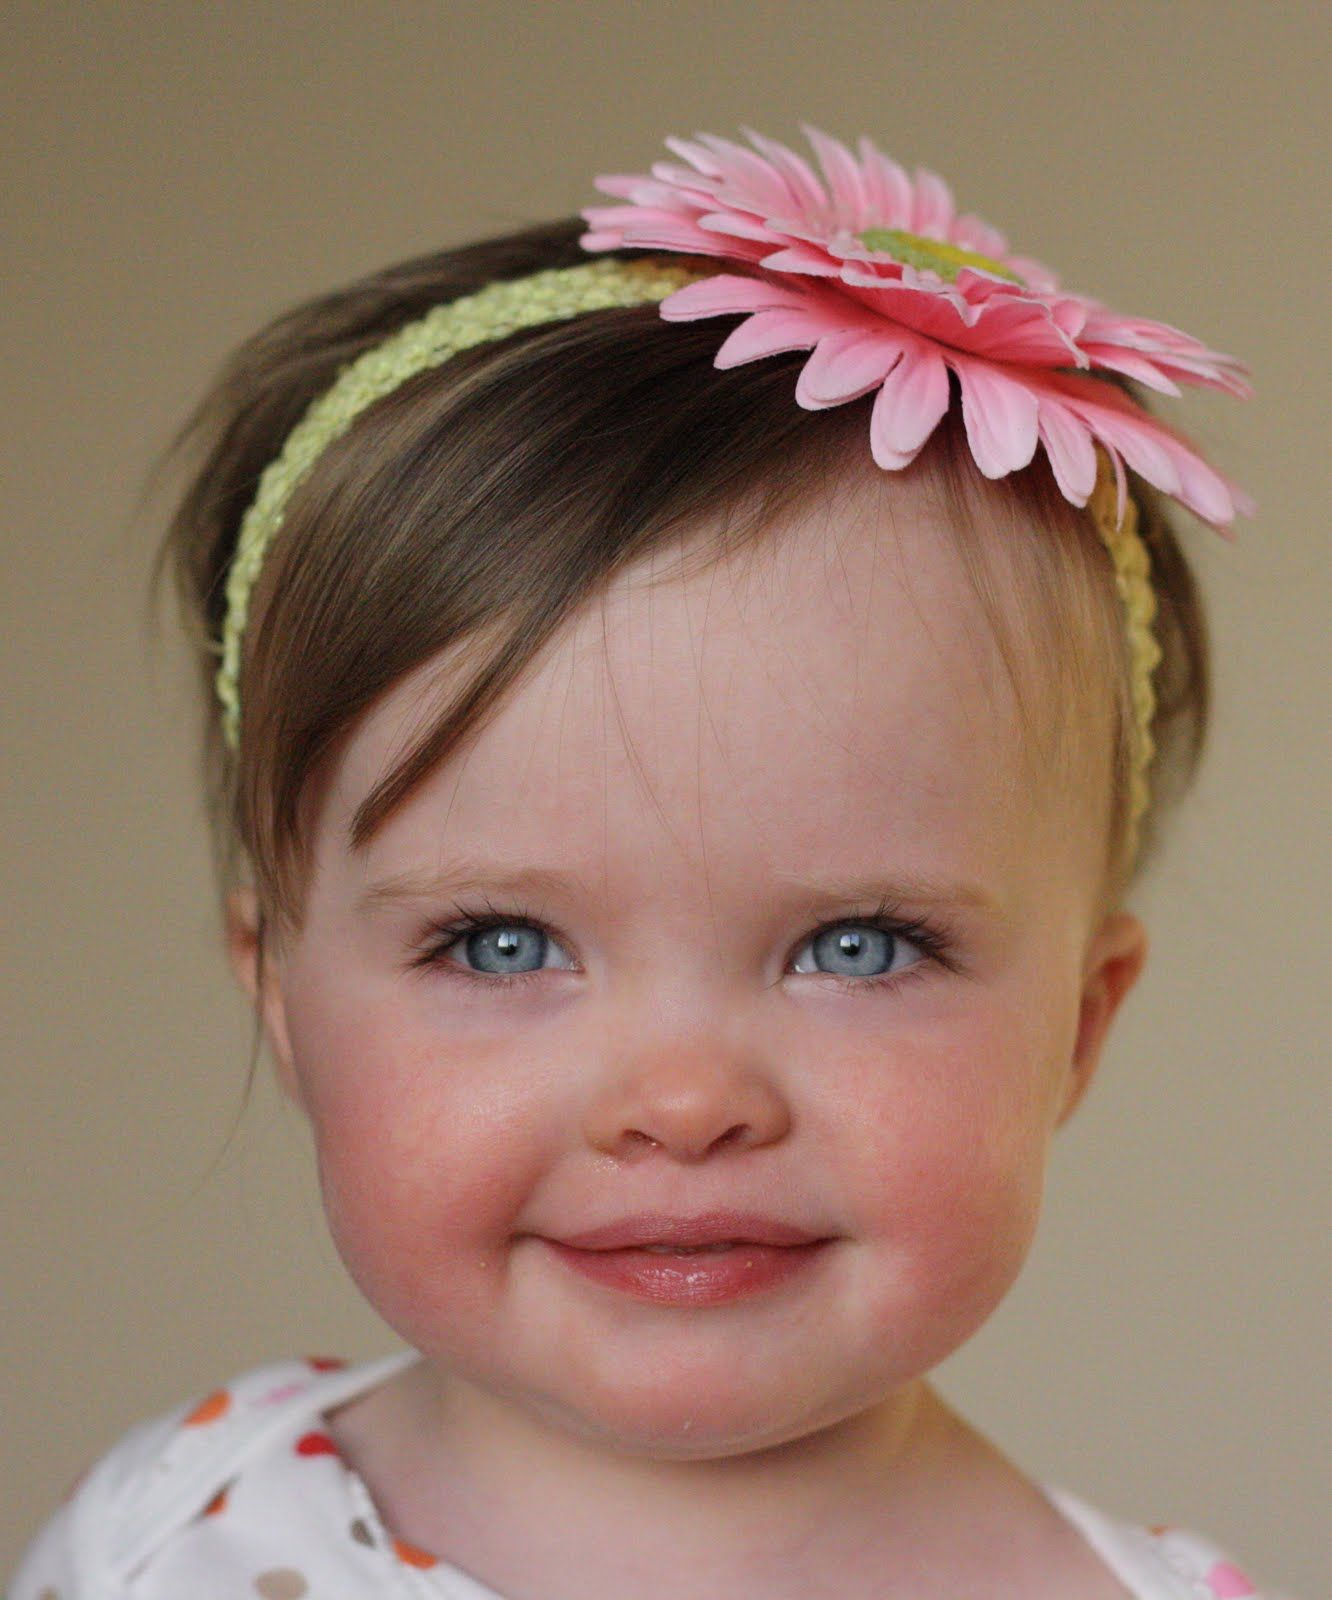 Babies With Nice Dresses Wallpapers Baby Girl Images Beautiful Babies Beautiful Baby Girl